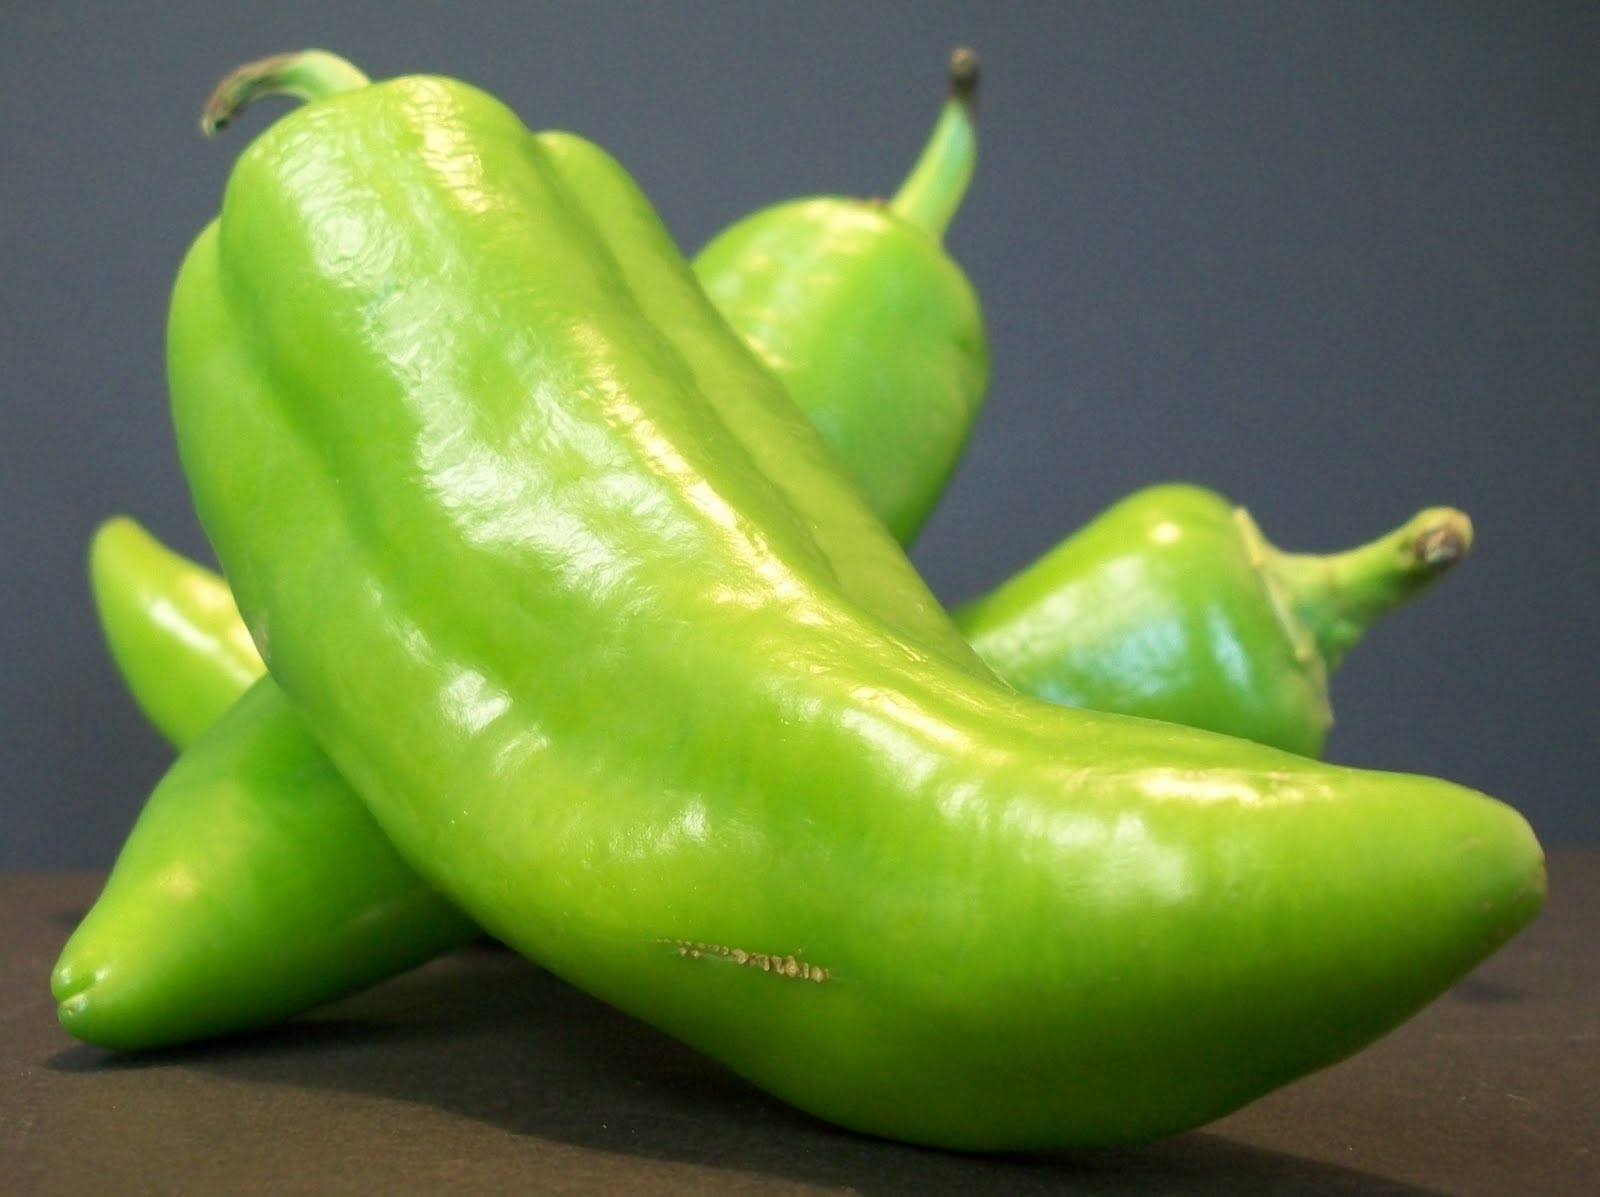 My Kind of Cooking: Tuesday's Tips & Tricks: Storing Peppers